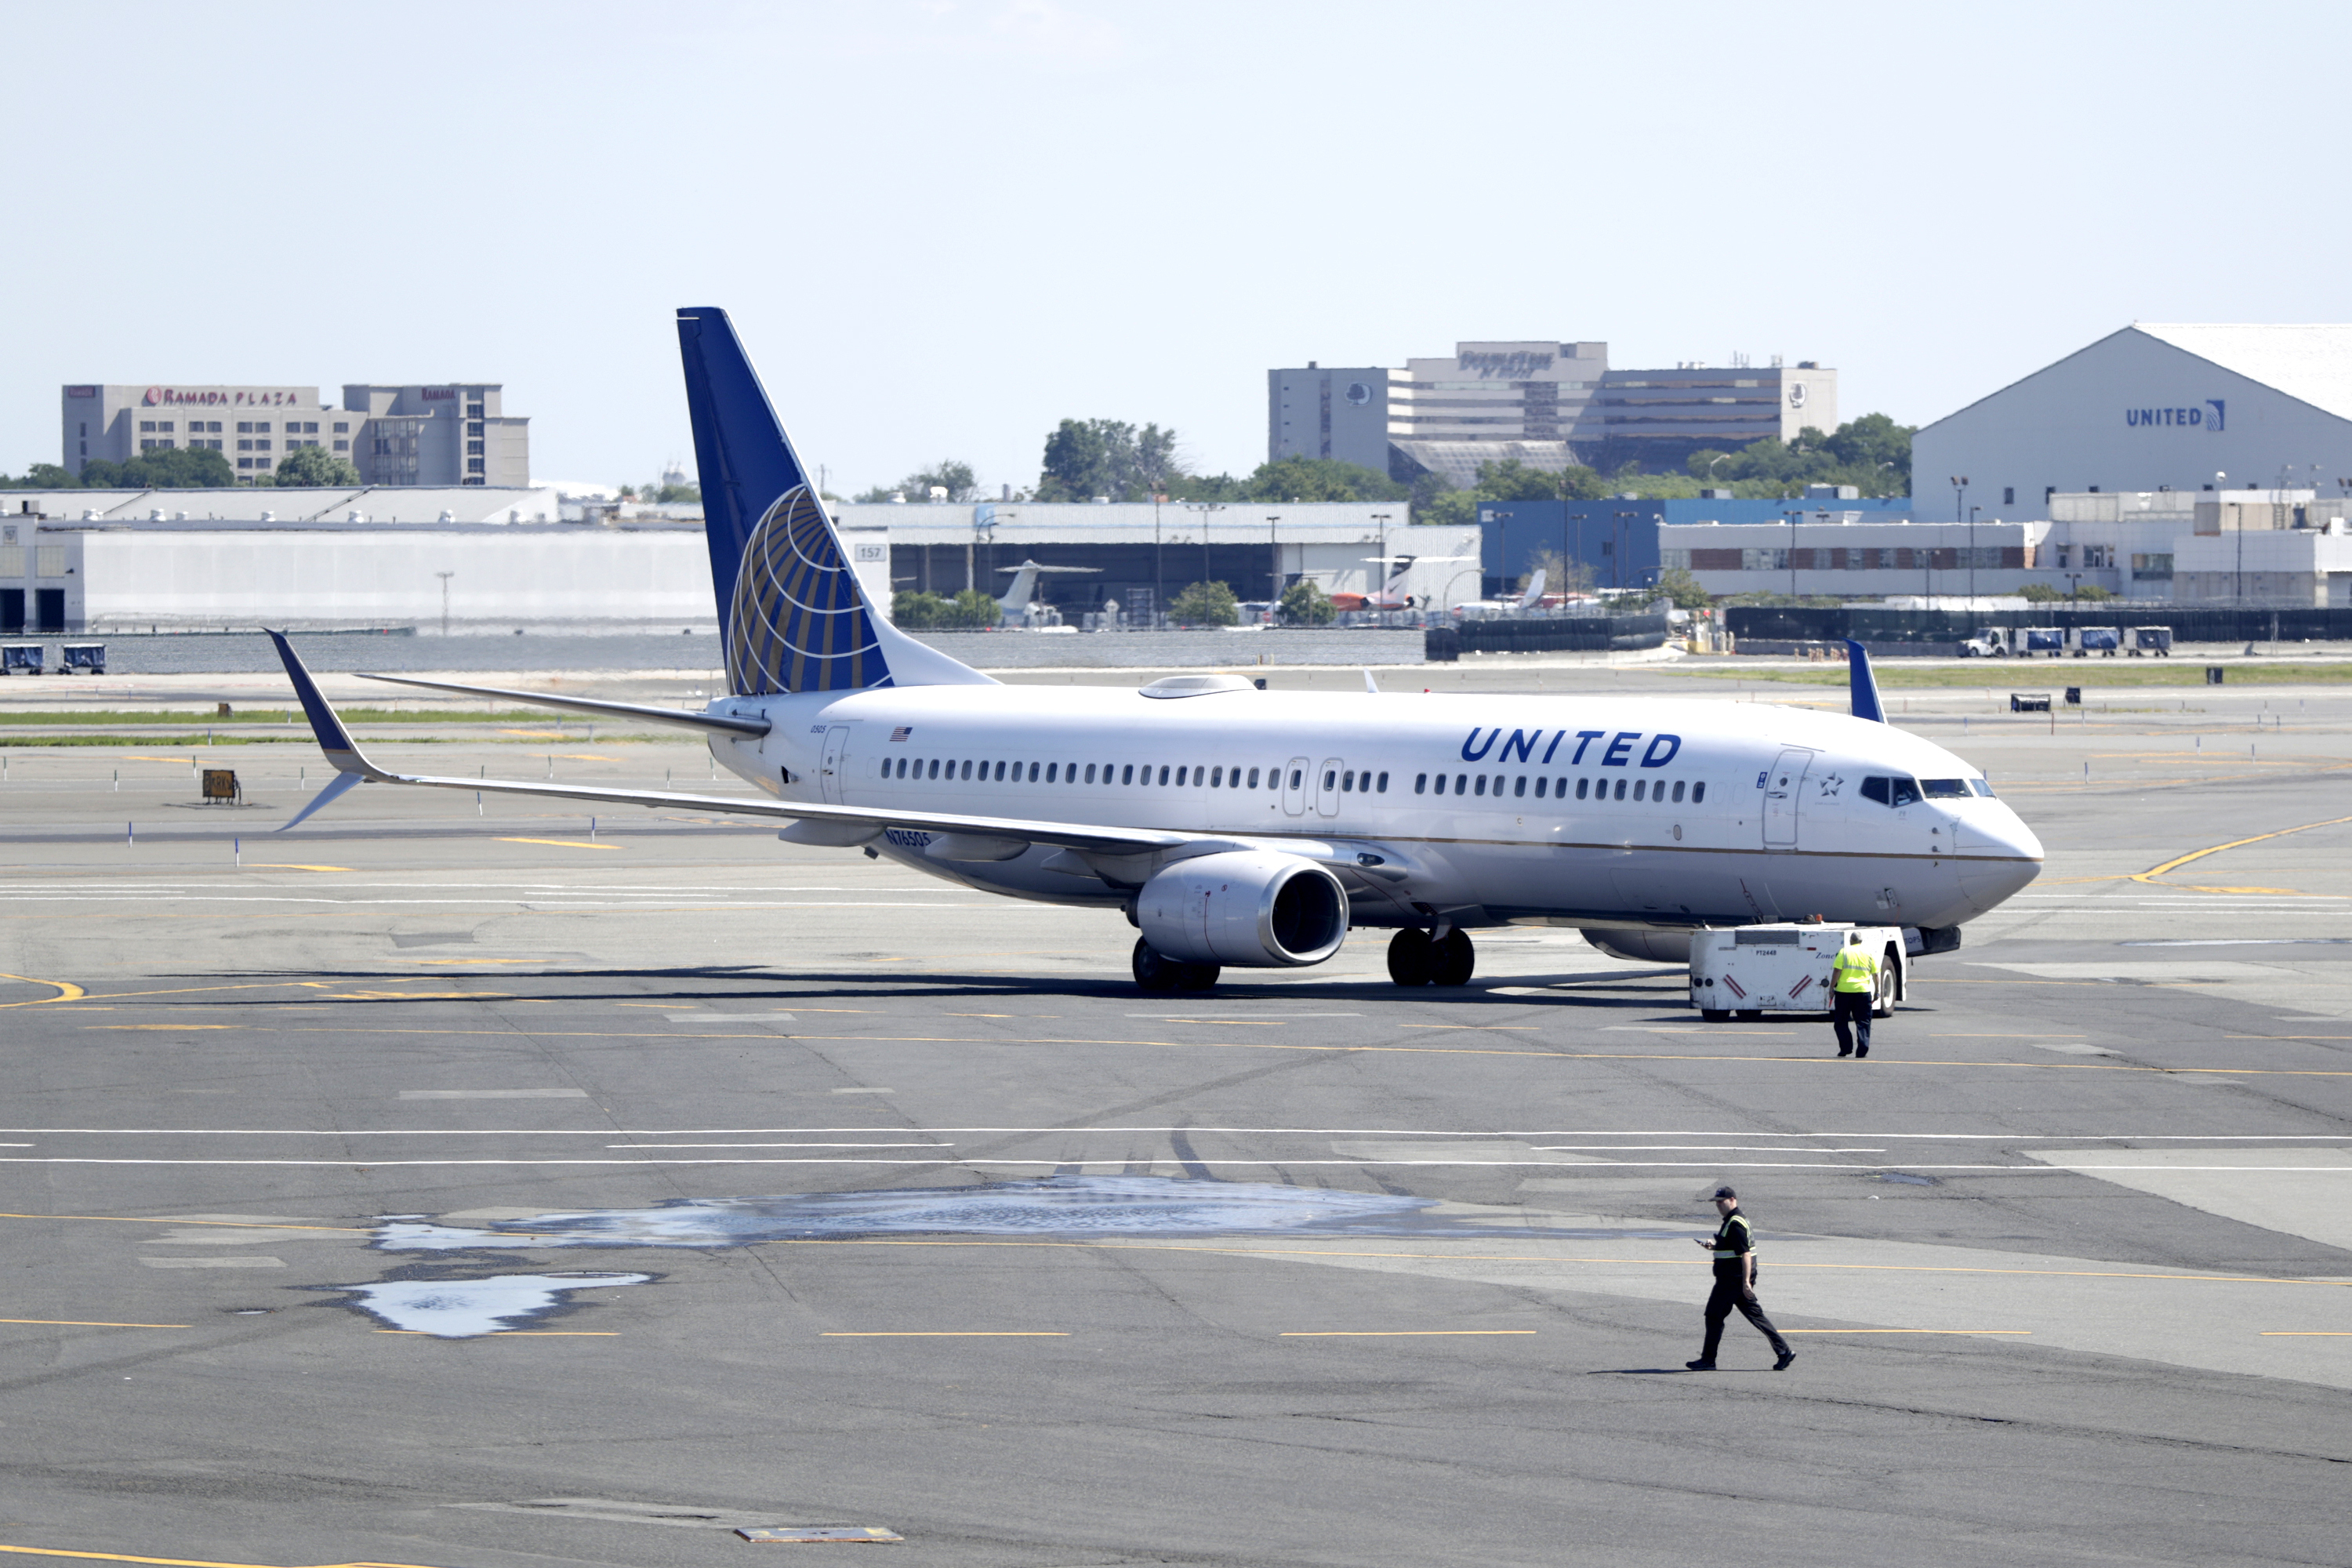 A United Airlines commercial jet taxis away from Terminal C before lift-off at Newark Liberty International Airport, Wednesday, July 18, 2018, in Newark, N.J.